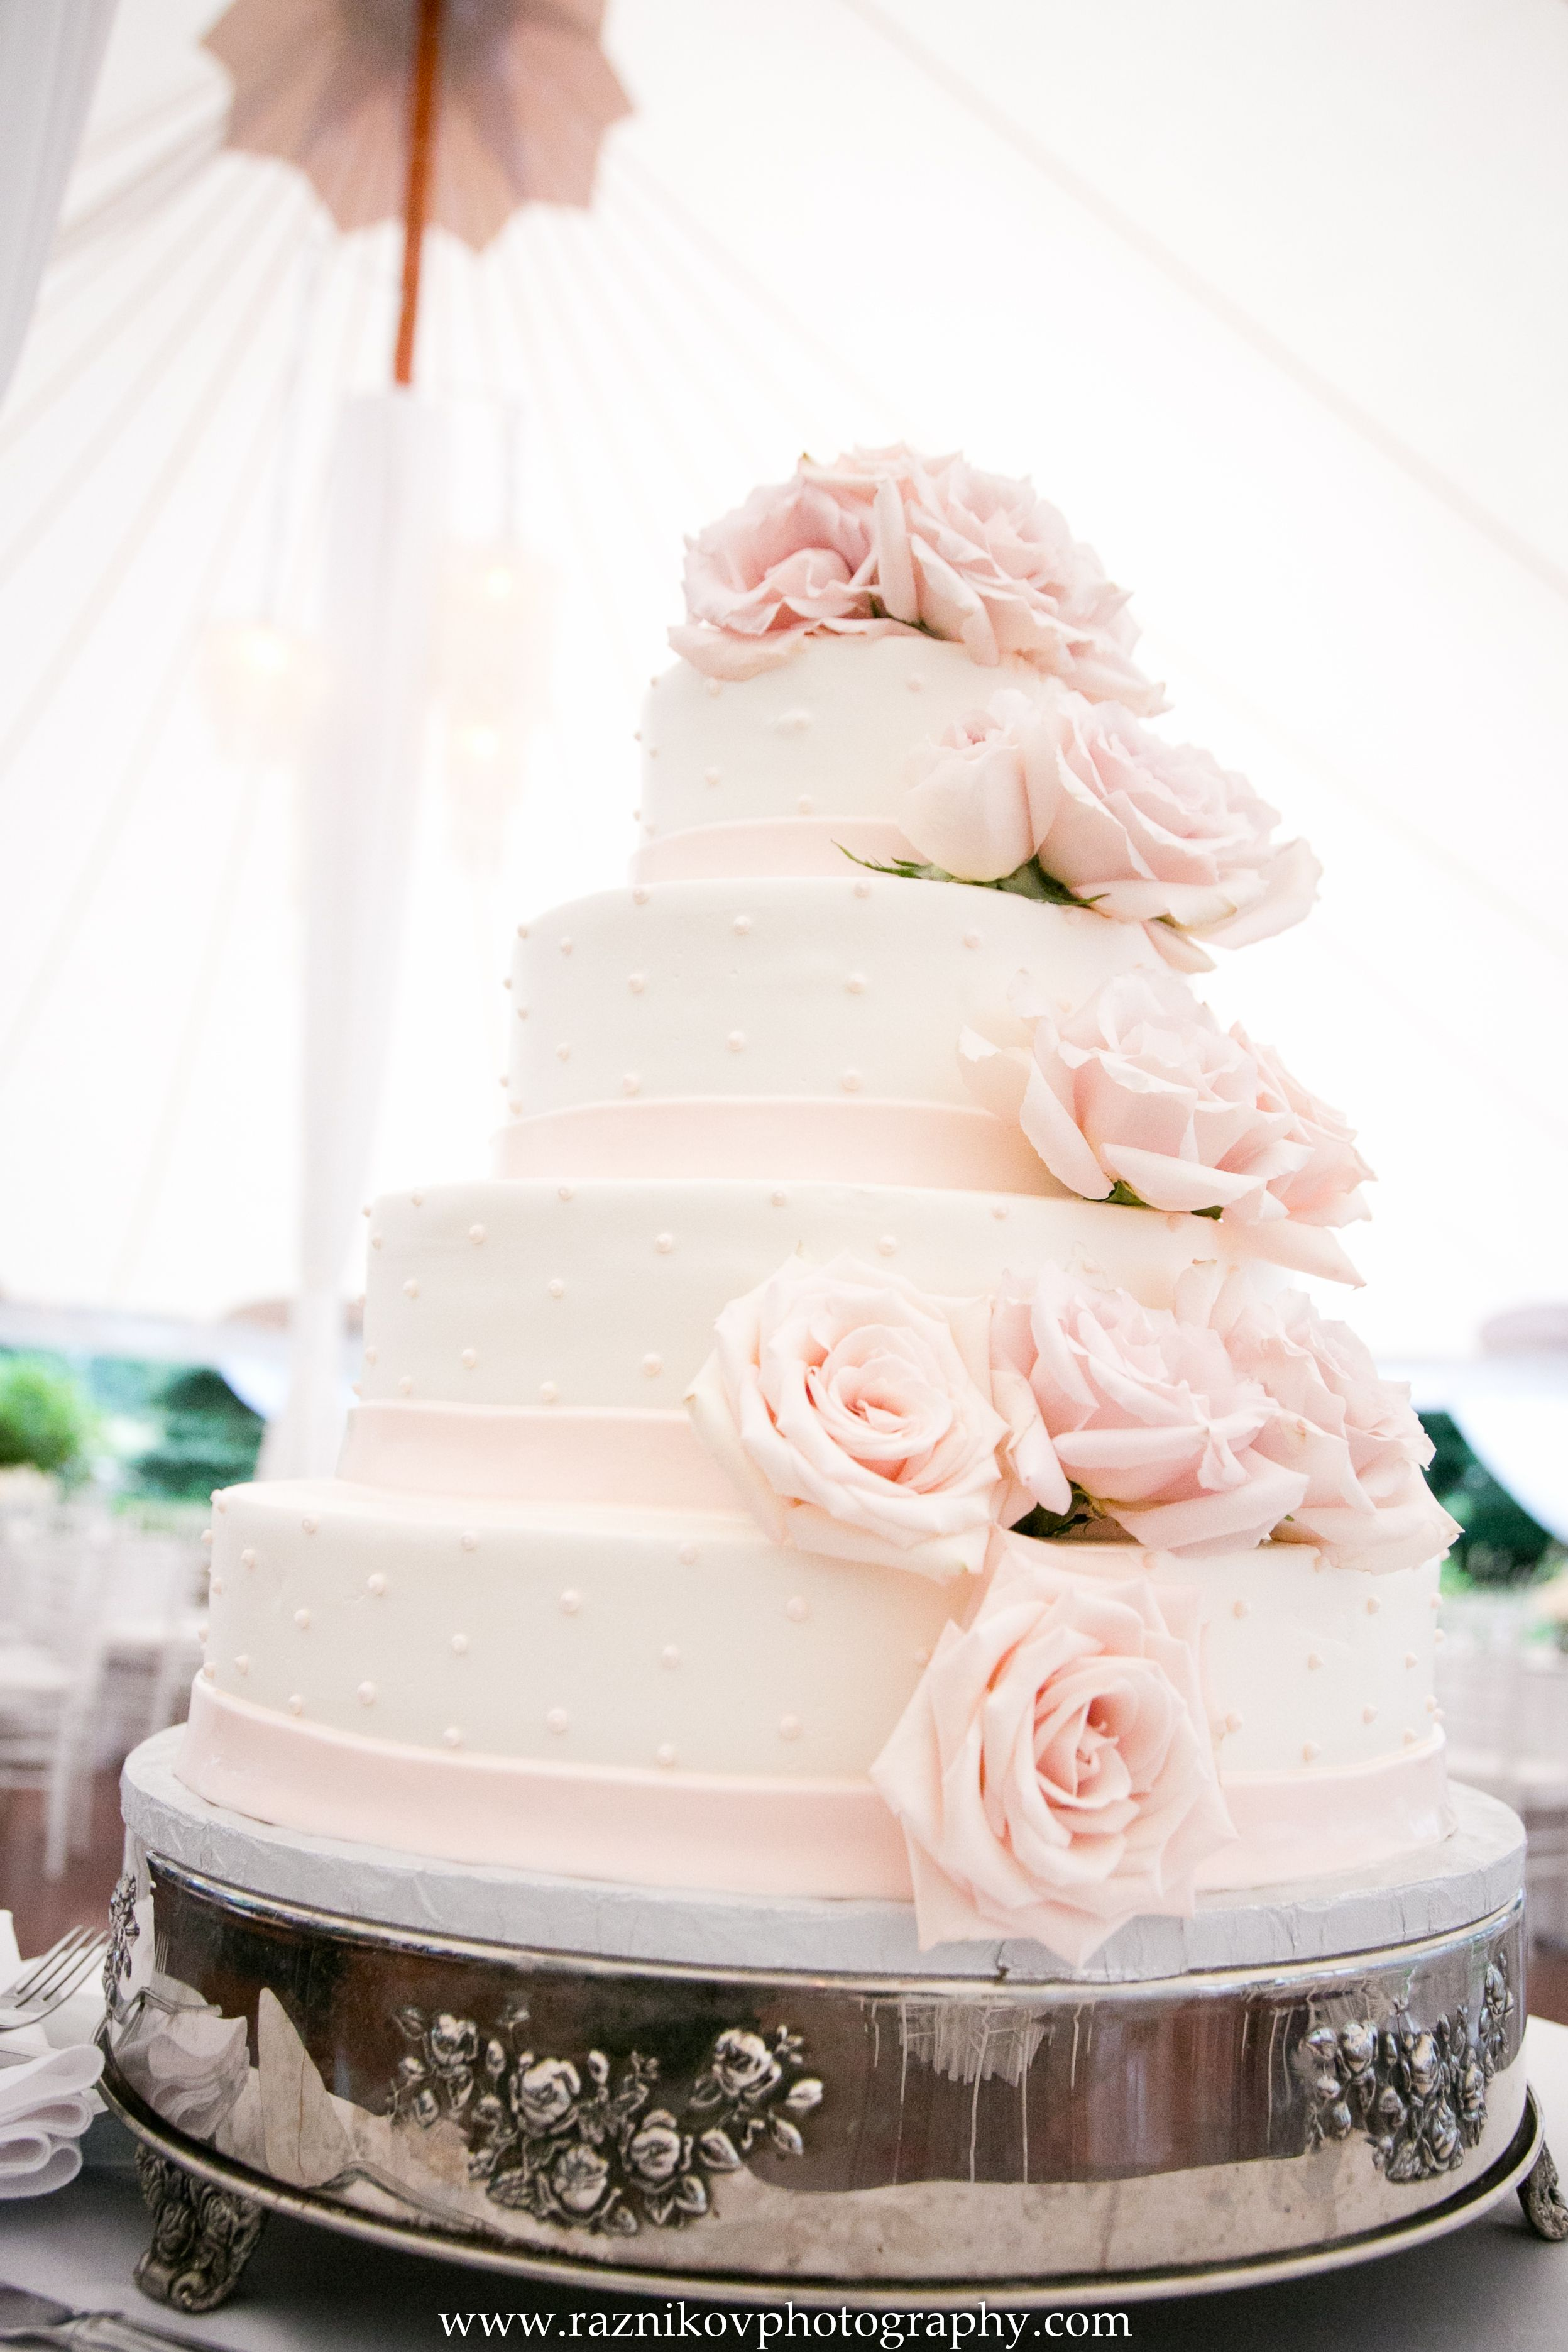 The elegant cake was made by Cakes for Occasions!